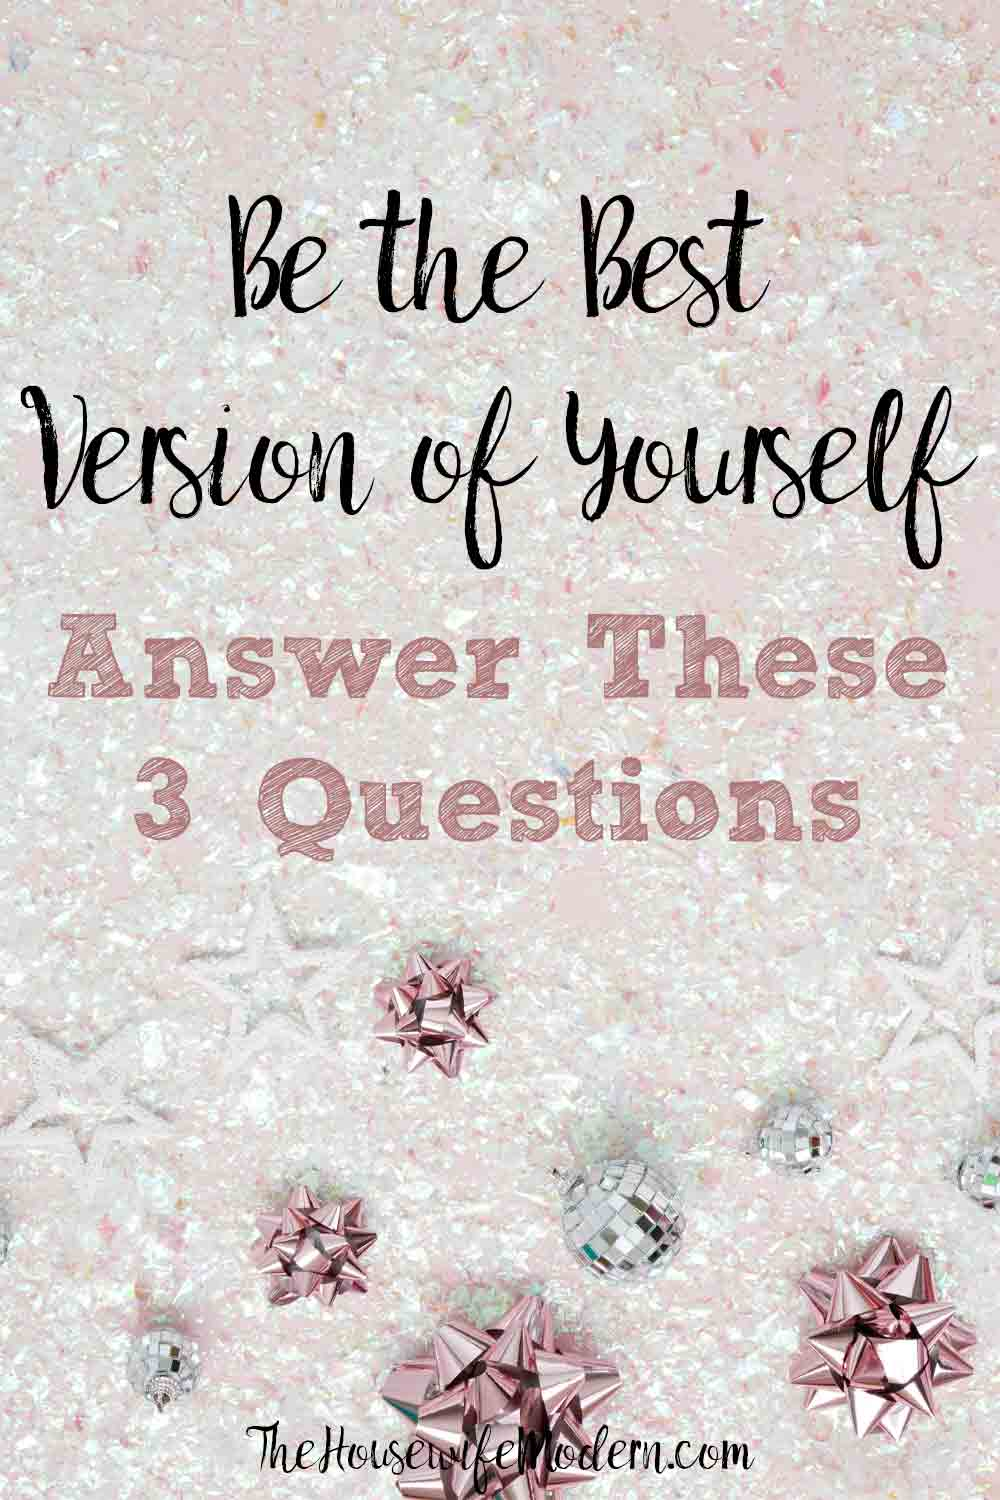 How to Be Your Best Self: Answer 3 Simple Questions. Have you every wondered how to be the best version of yourself? Here are 3 questions to answer and 4 things to avoid.